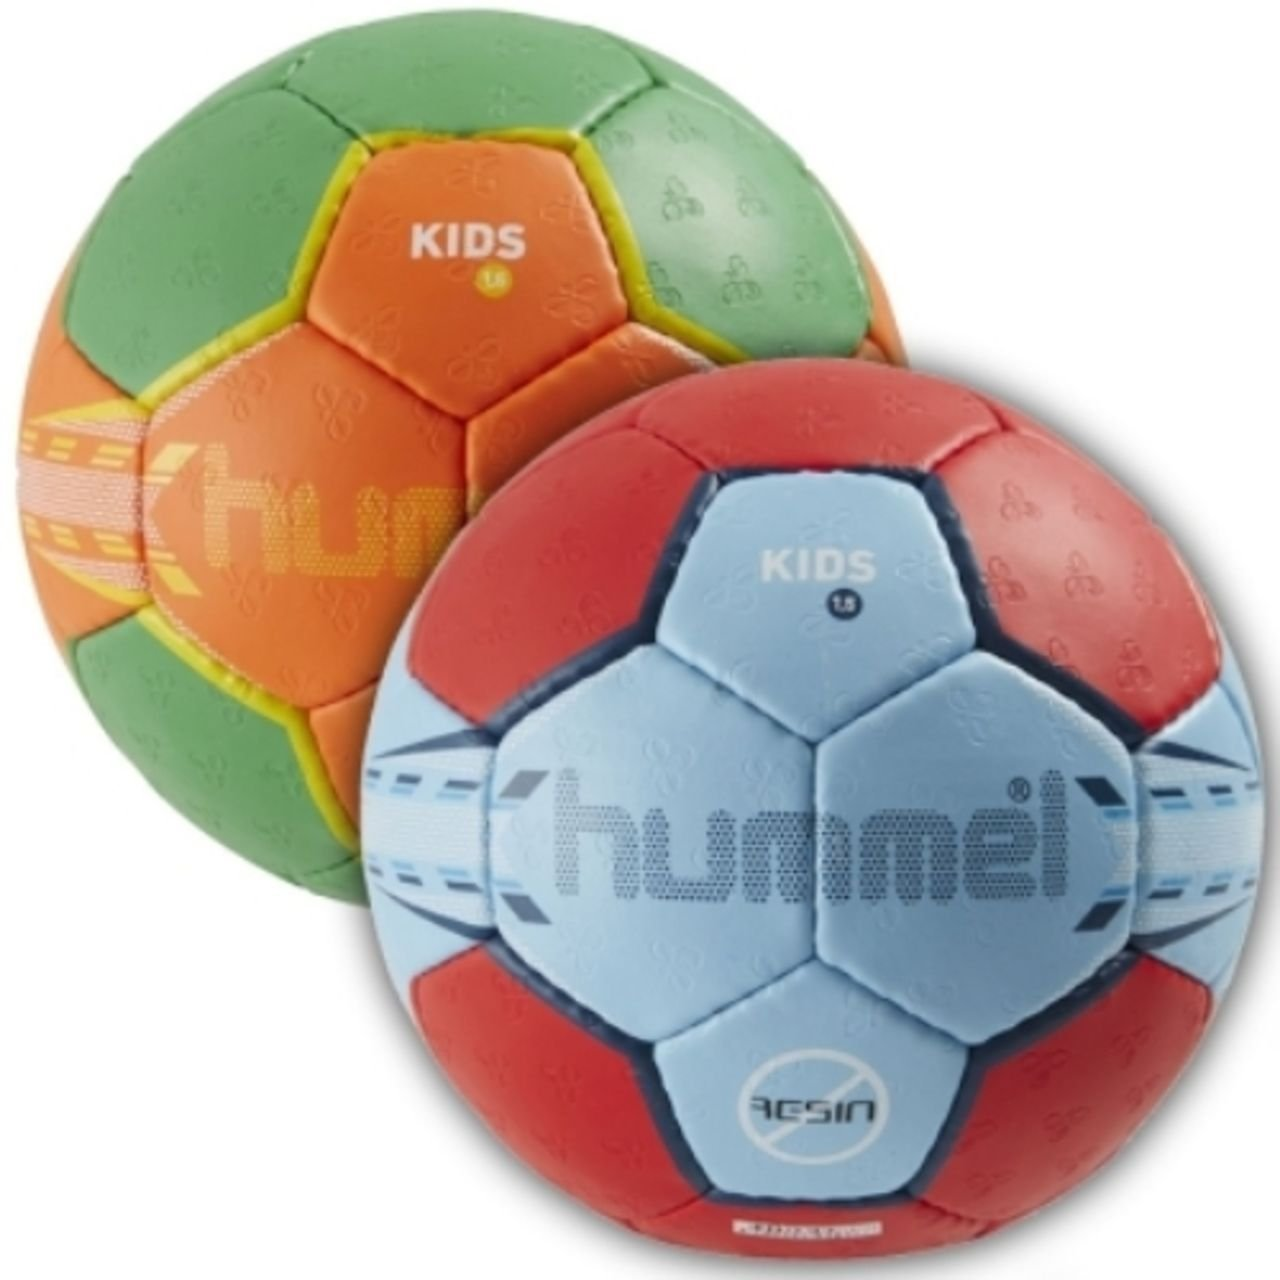 Hummel Intro Balón de balonmano, tamaño 0 - 1, Multicolor: Amazon ...